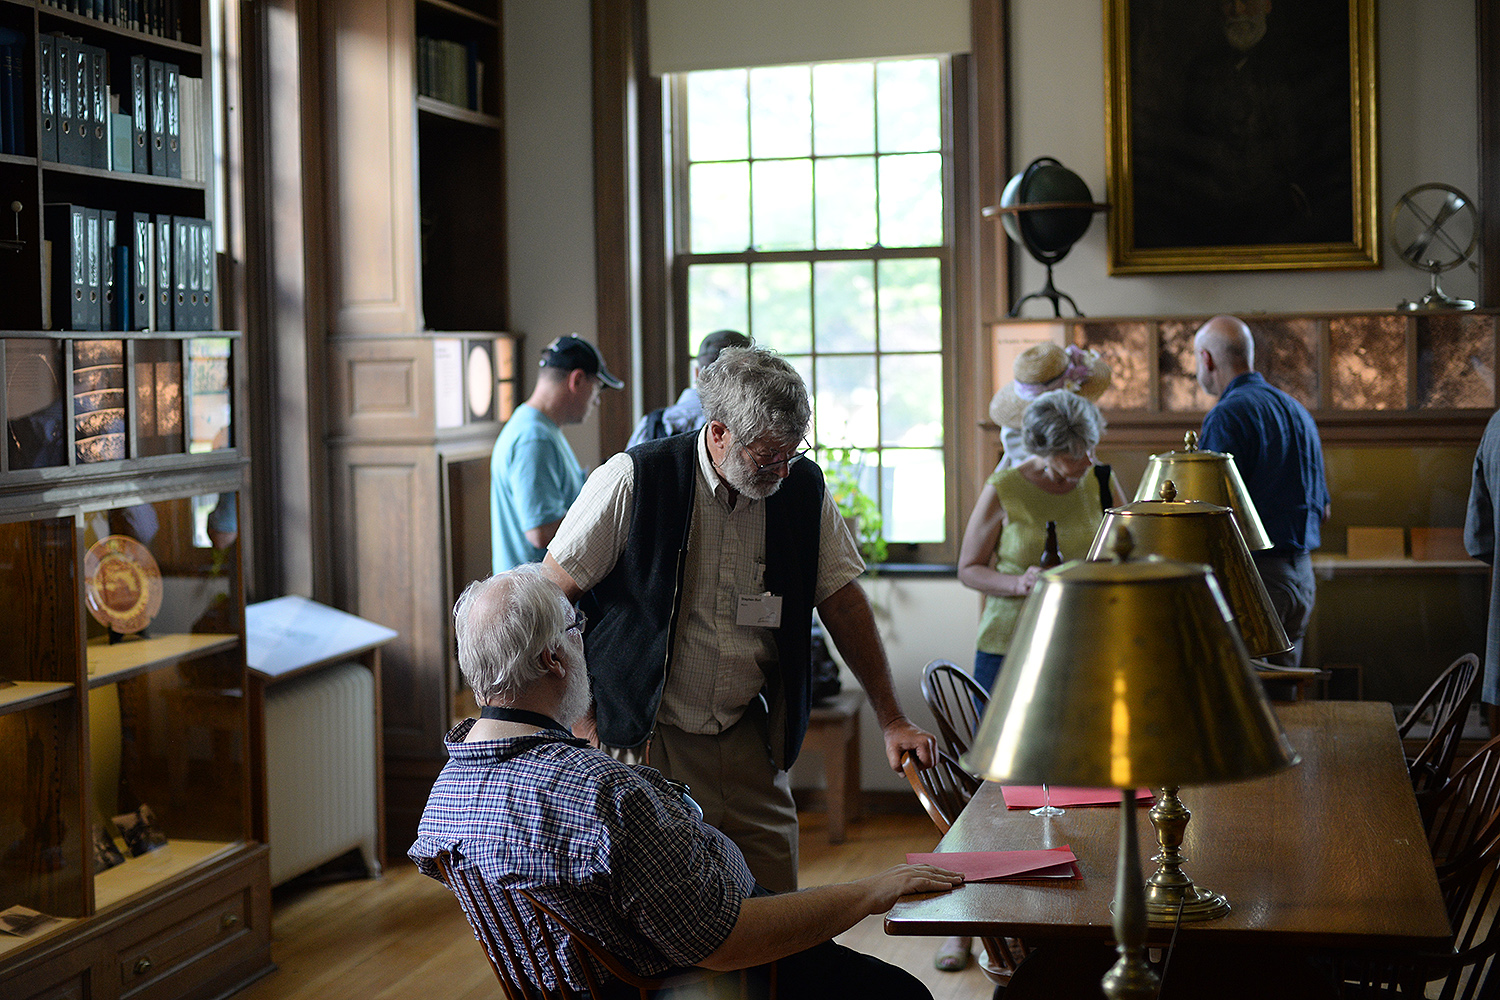 Guests visited the historical exhibit commemorating the observatory's centennial in the building's library.